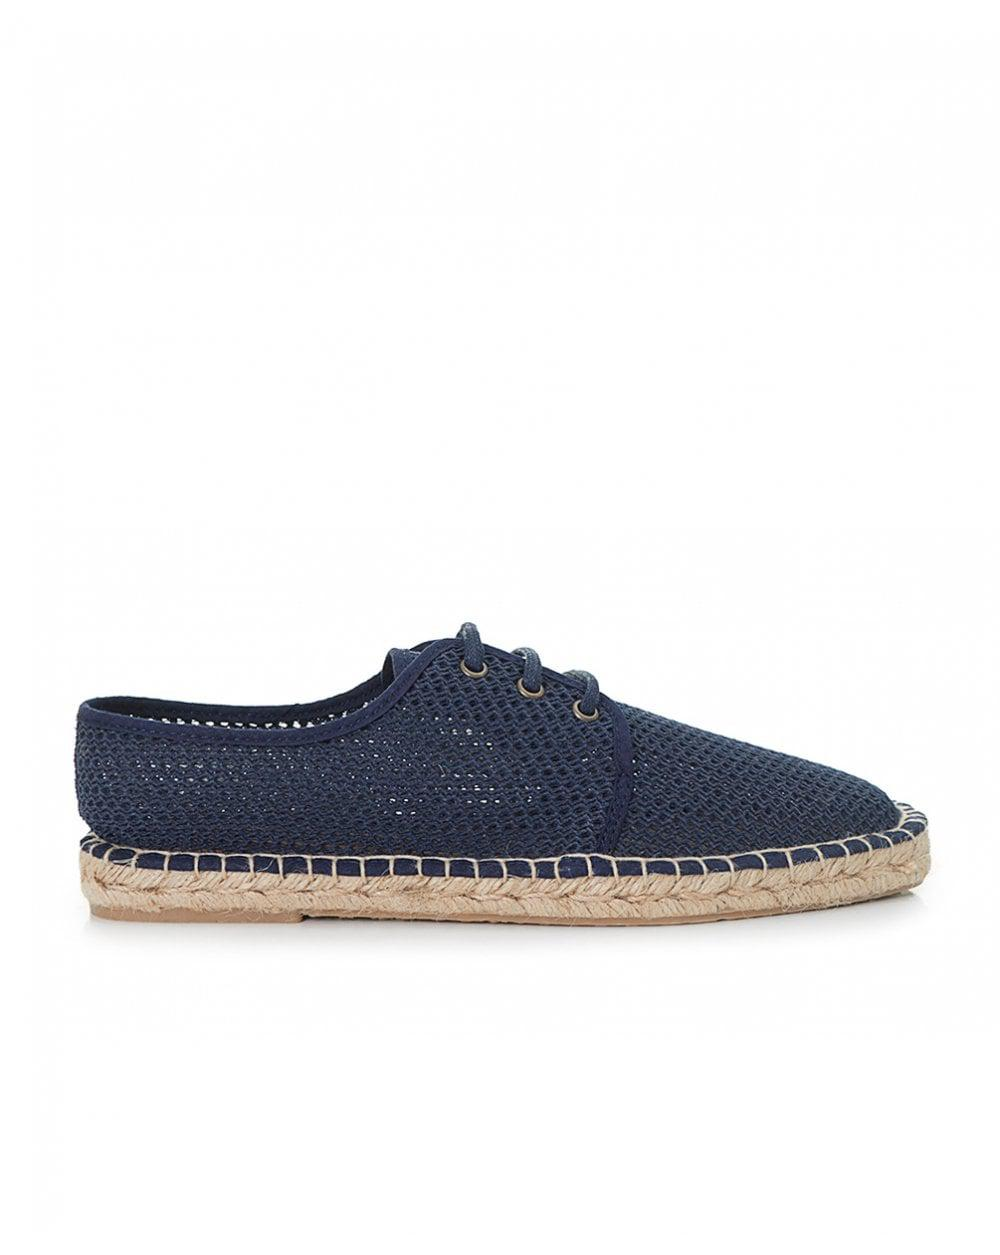 e4b40d955 H by Hudson Benson Mesh Lace Up Espadrilles in Blue for Men - Save ...